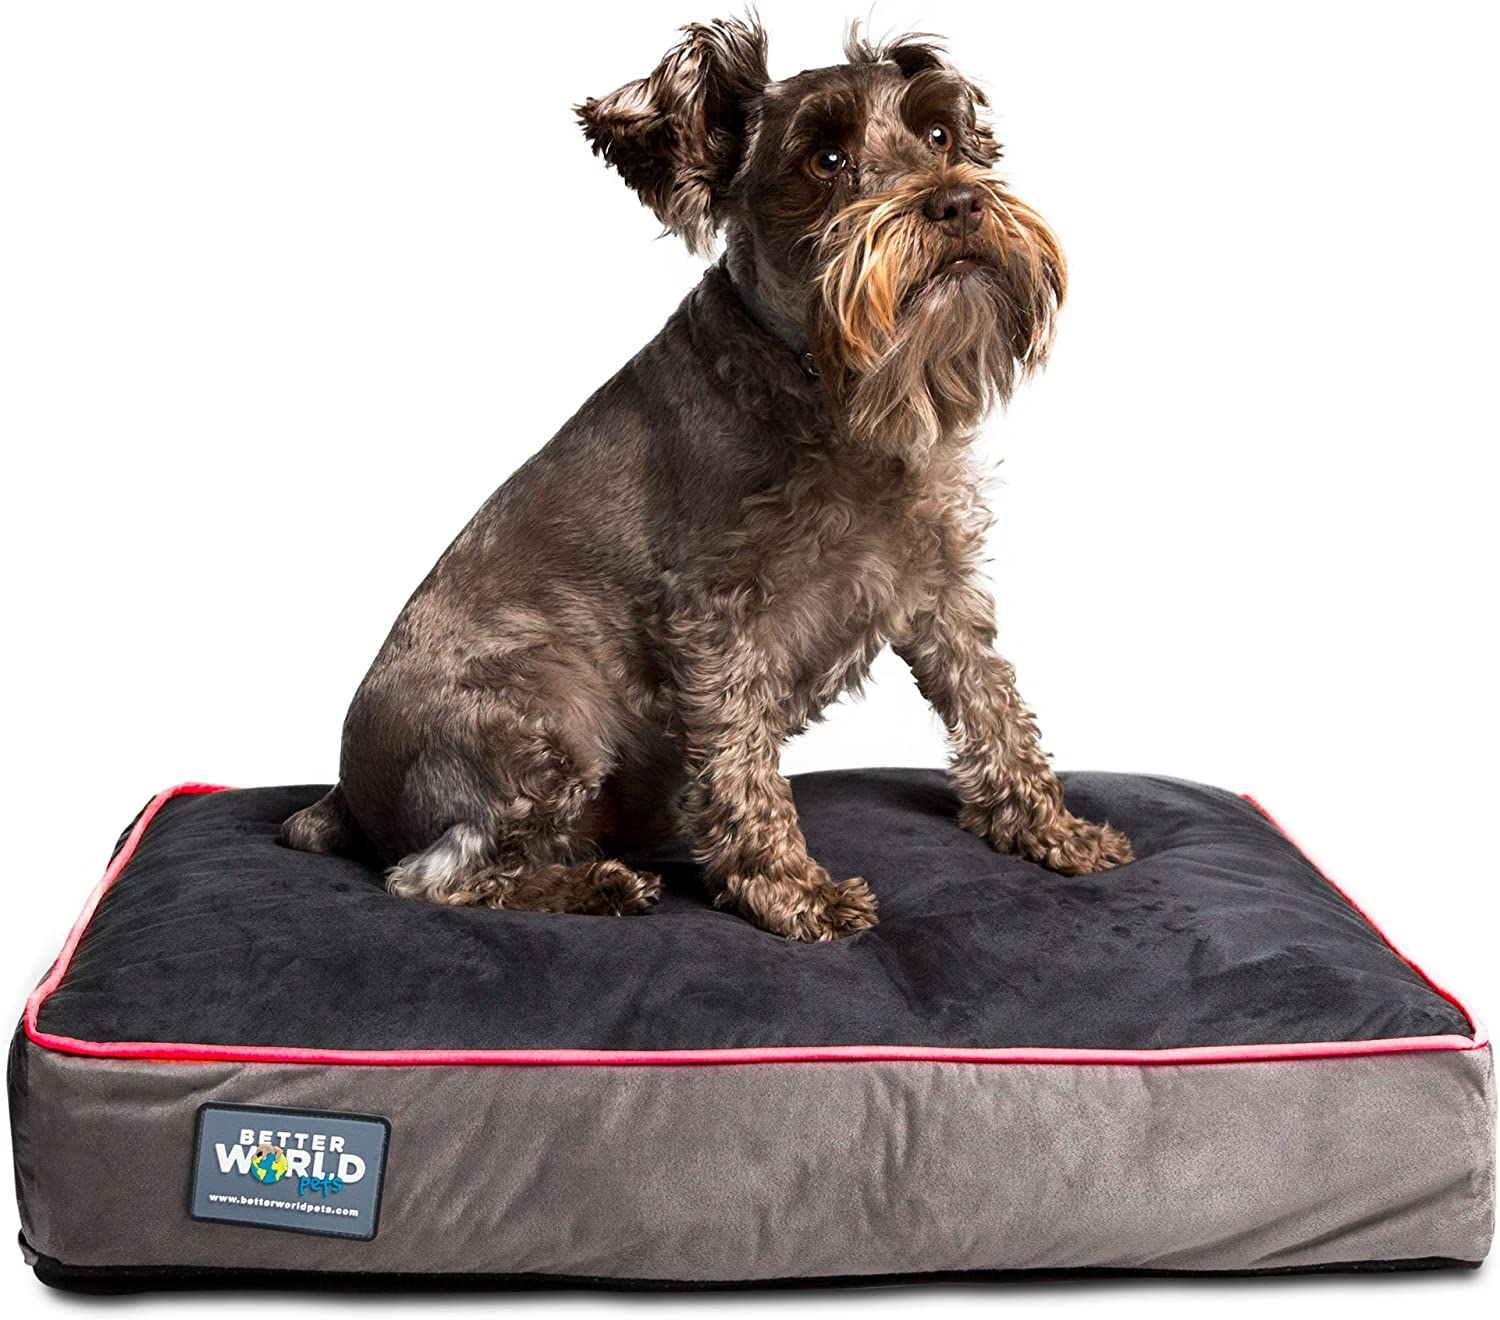 Better World Pets 5-inch Thick Orthopedic Dog Bed | Pure Premium Shredded Memory Foam Ideal for Aging Dogs | Waterproof Removable Washable Cover